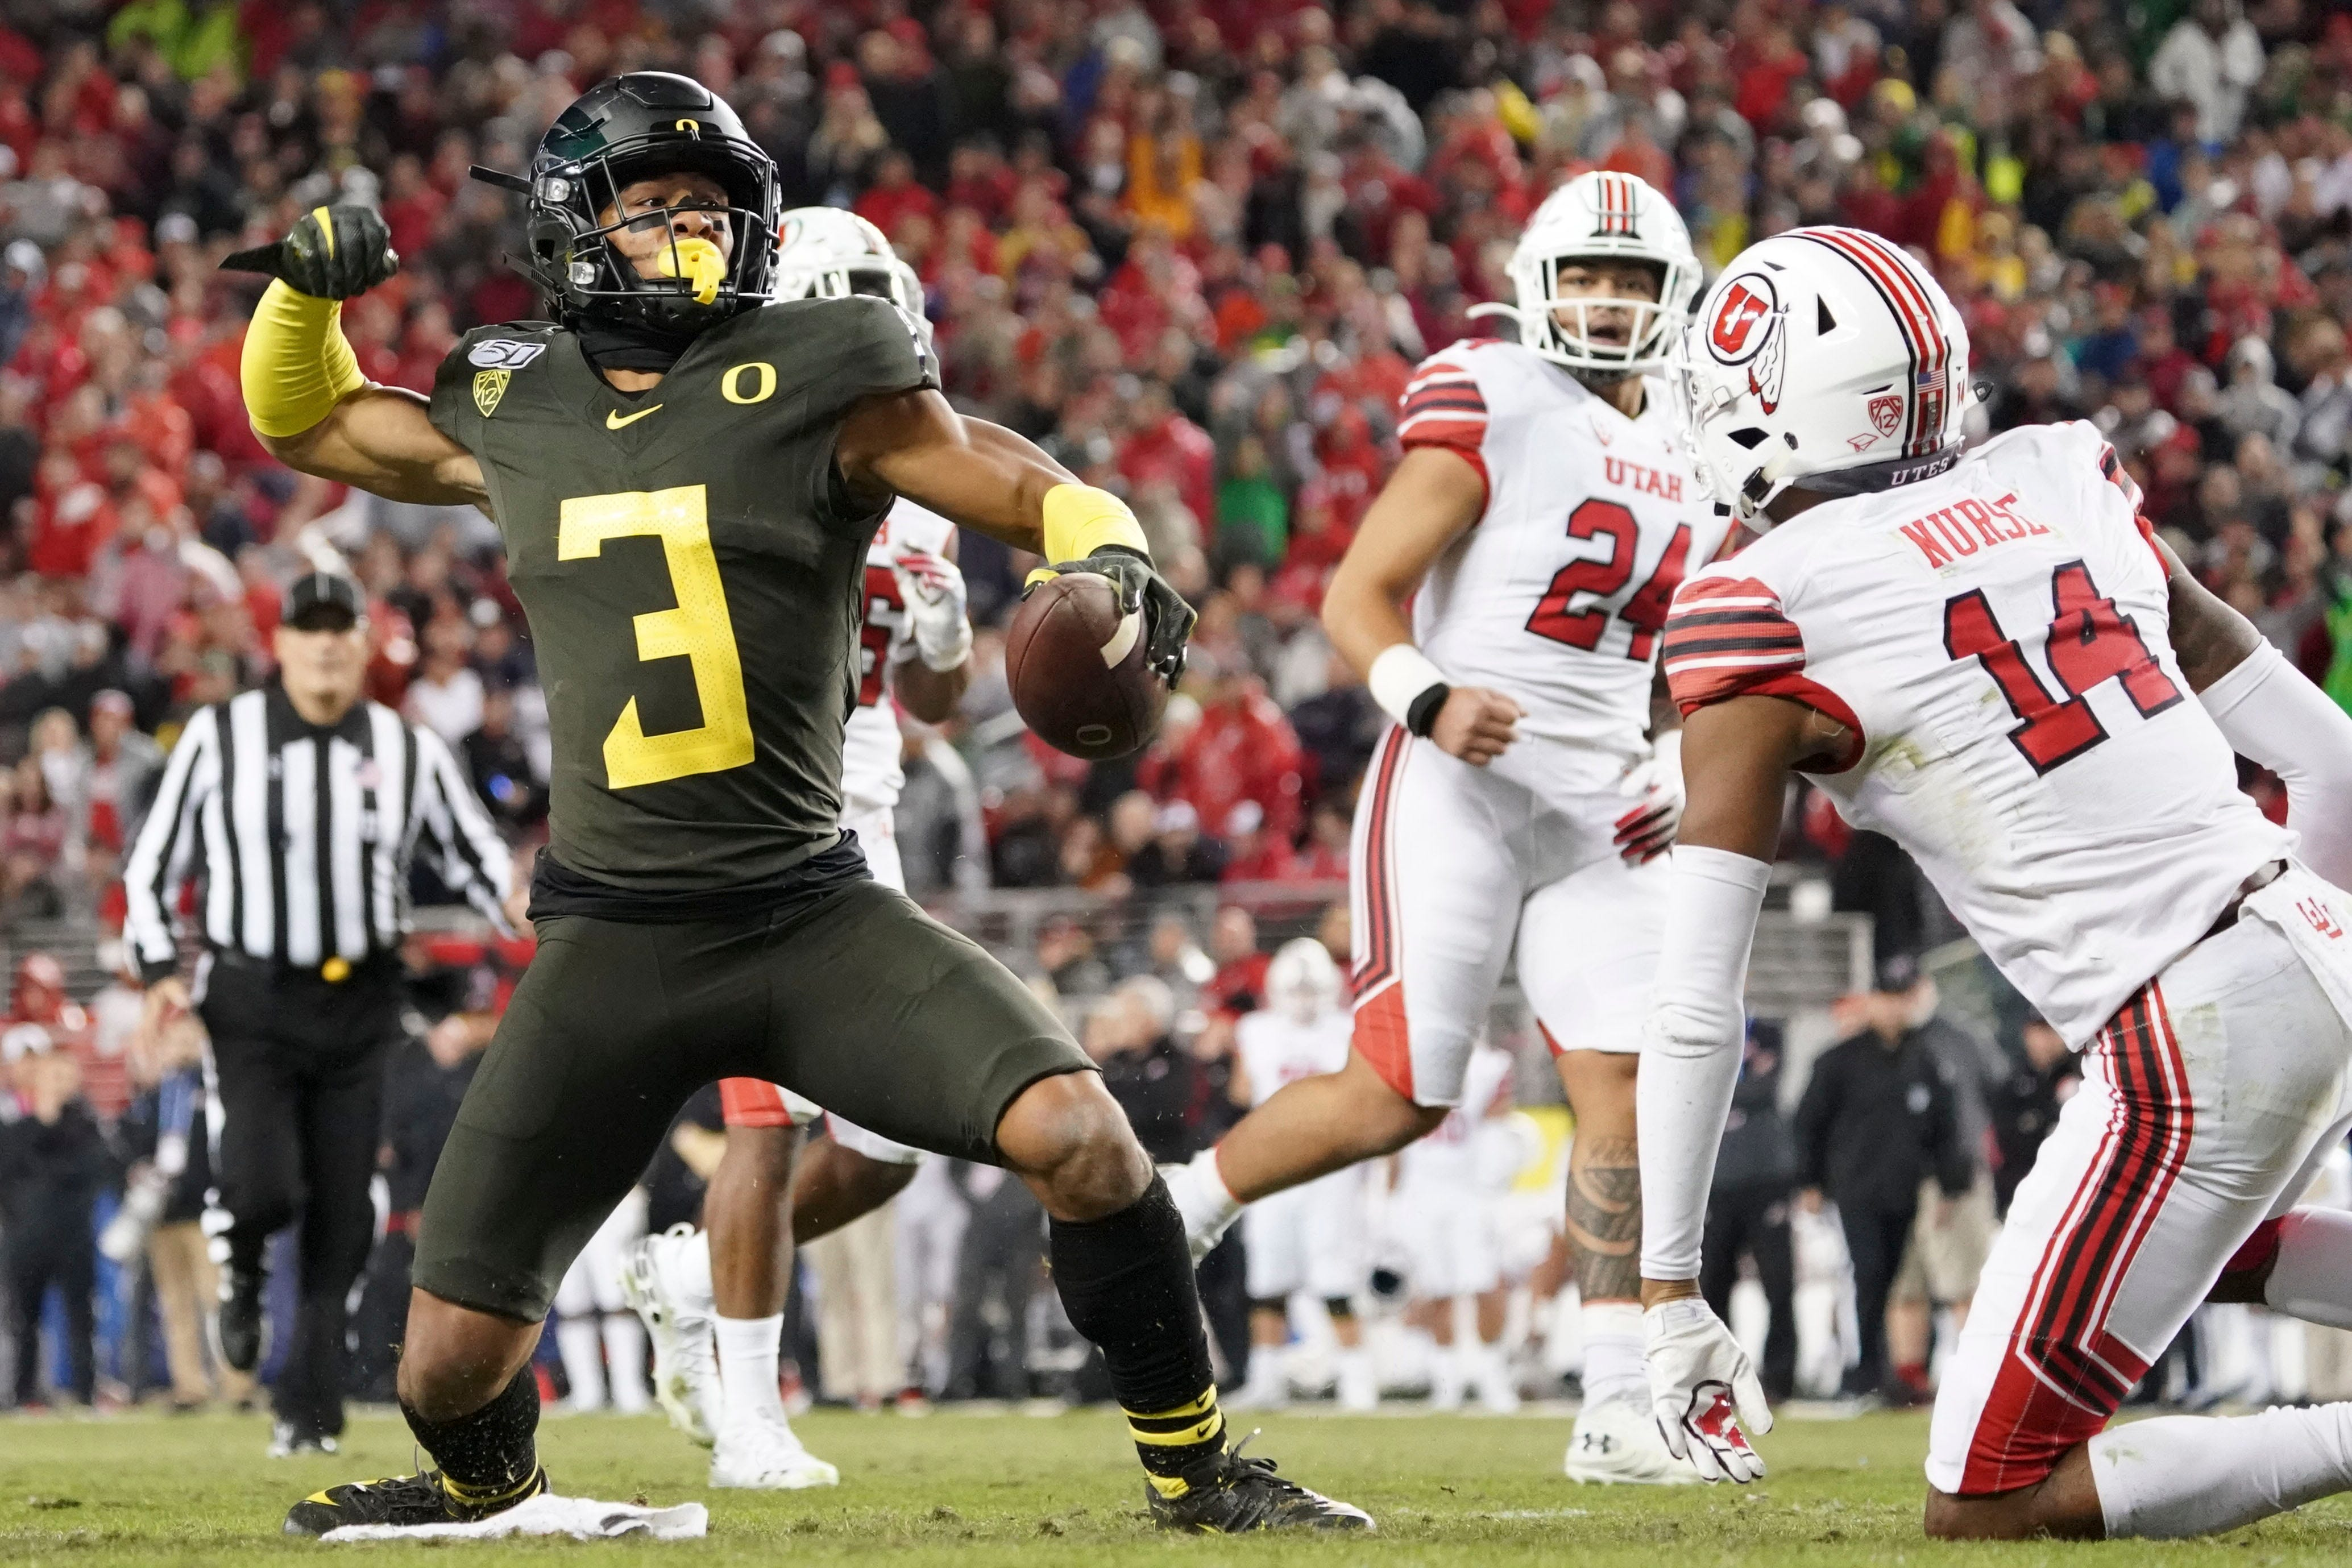 Oregon takes down No. 5 Utah in Pac-12 title game, eliminates conference from Playoff